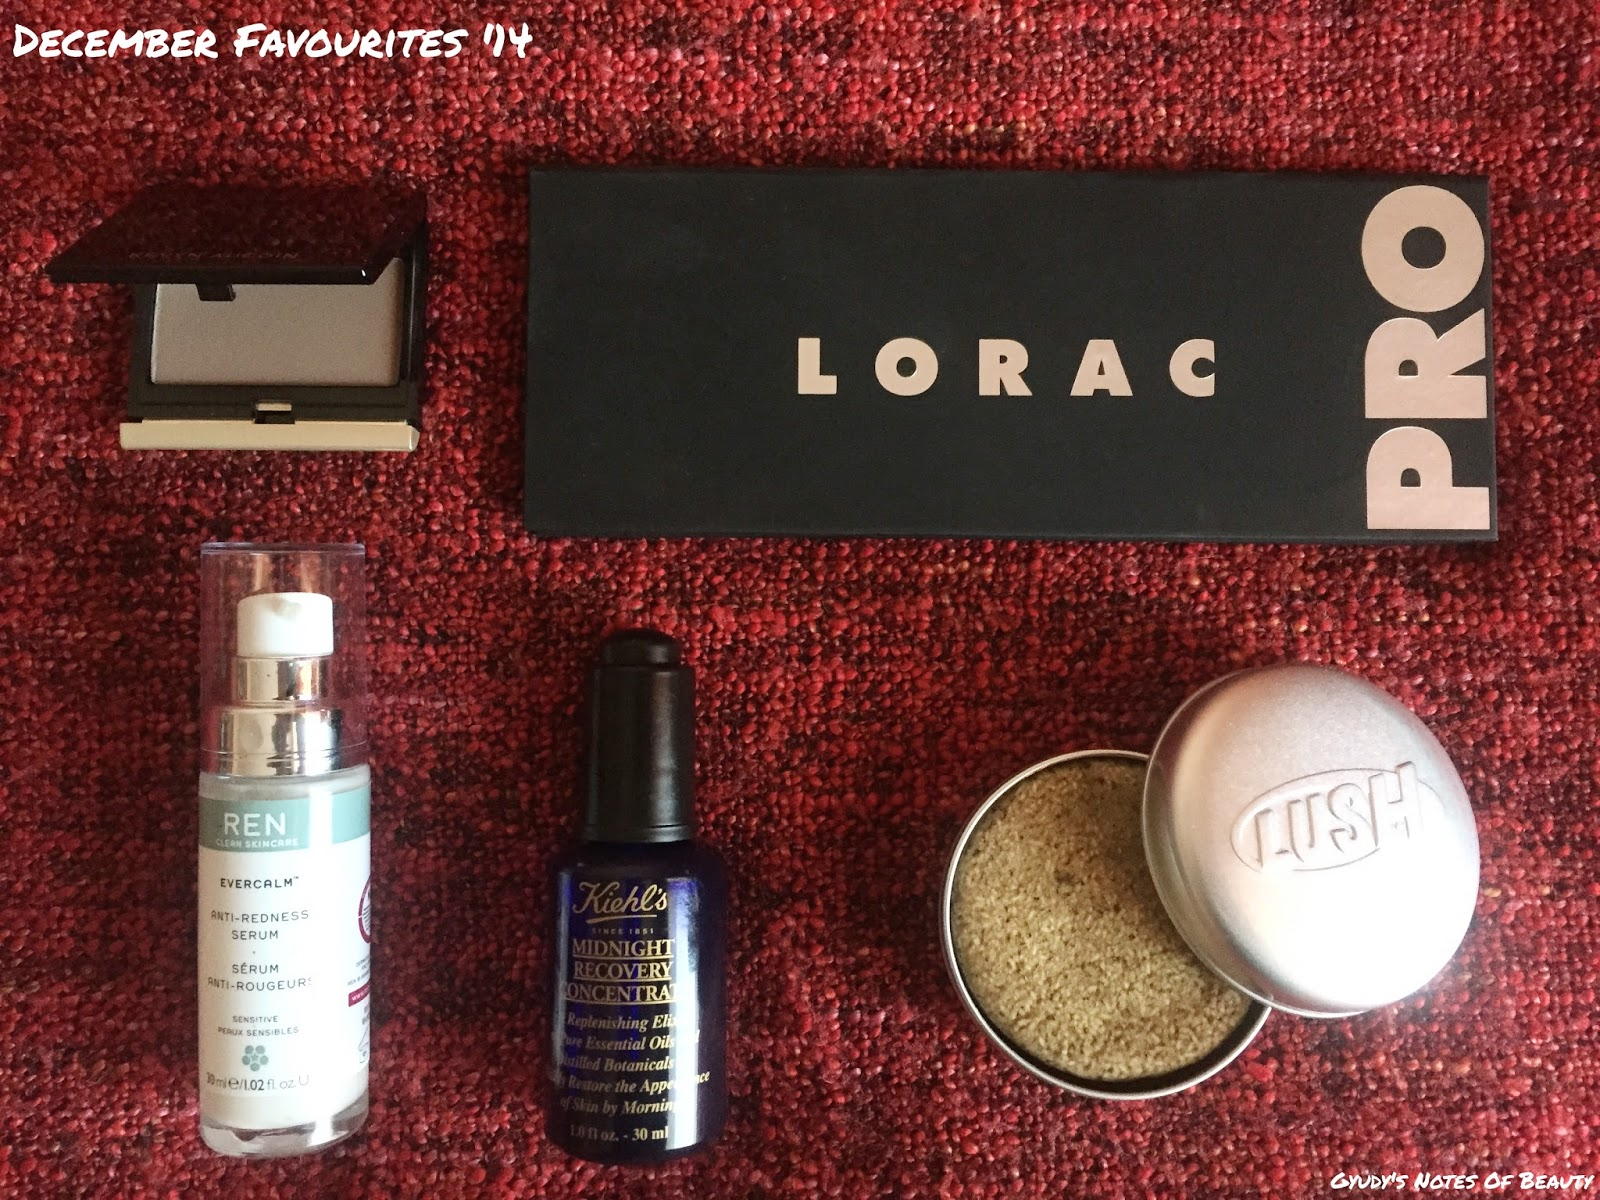 Kevin Aucoin Lorac Lush Ren Kiehl's Pro Palette Sculpting Powder Midnight Recovery Redness Copperhead